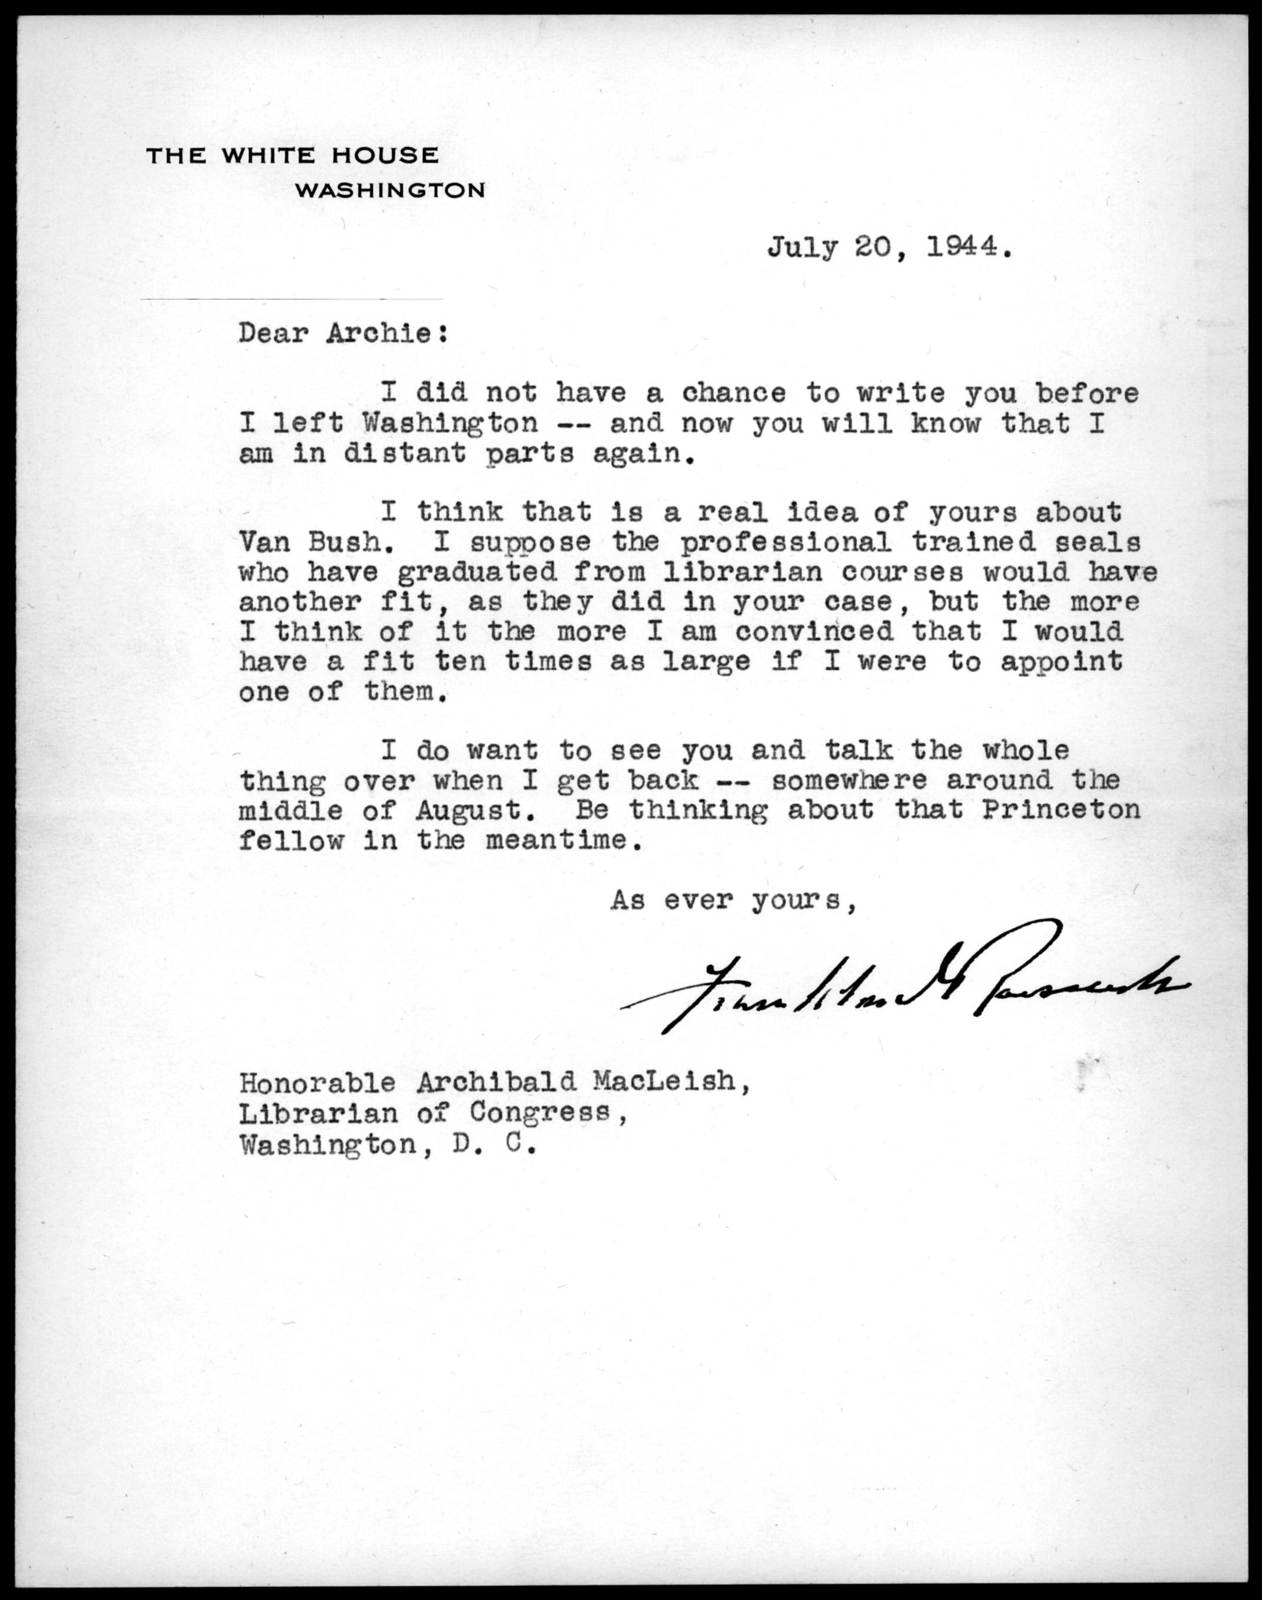 Letter from Franklin D. Roosevelt to Archibald MacLeish, July 20, 1944